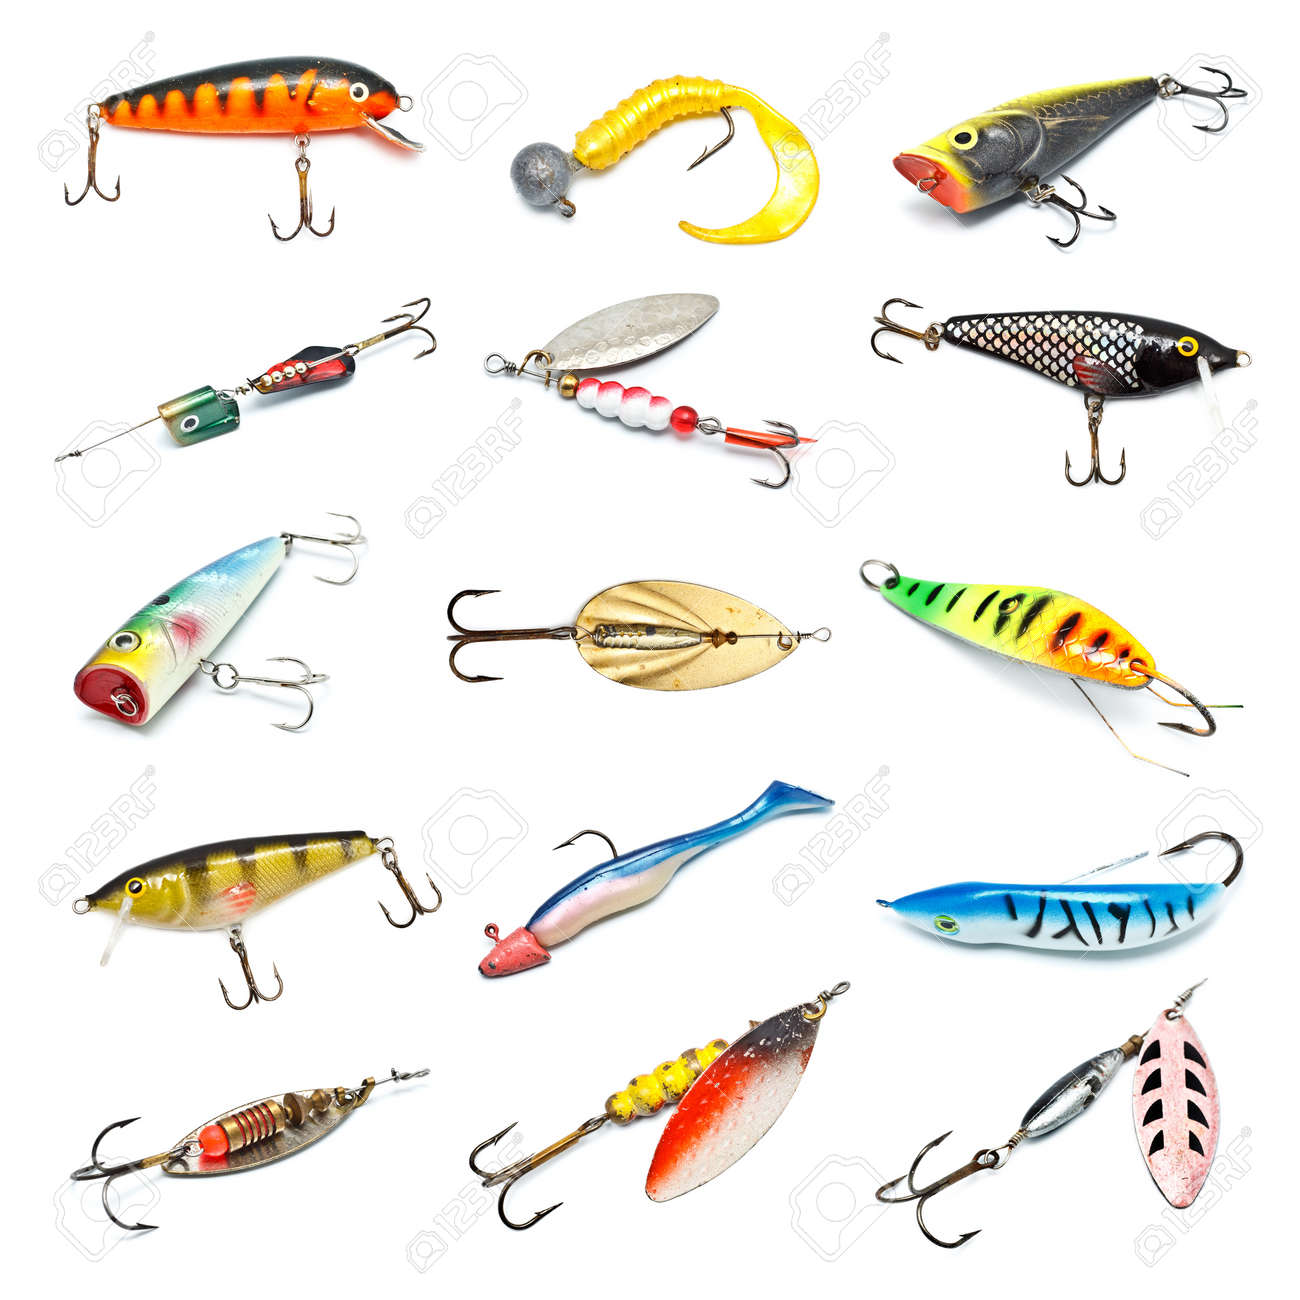 different fishing baits isolated on white background Stock Photo - 13102826